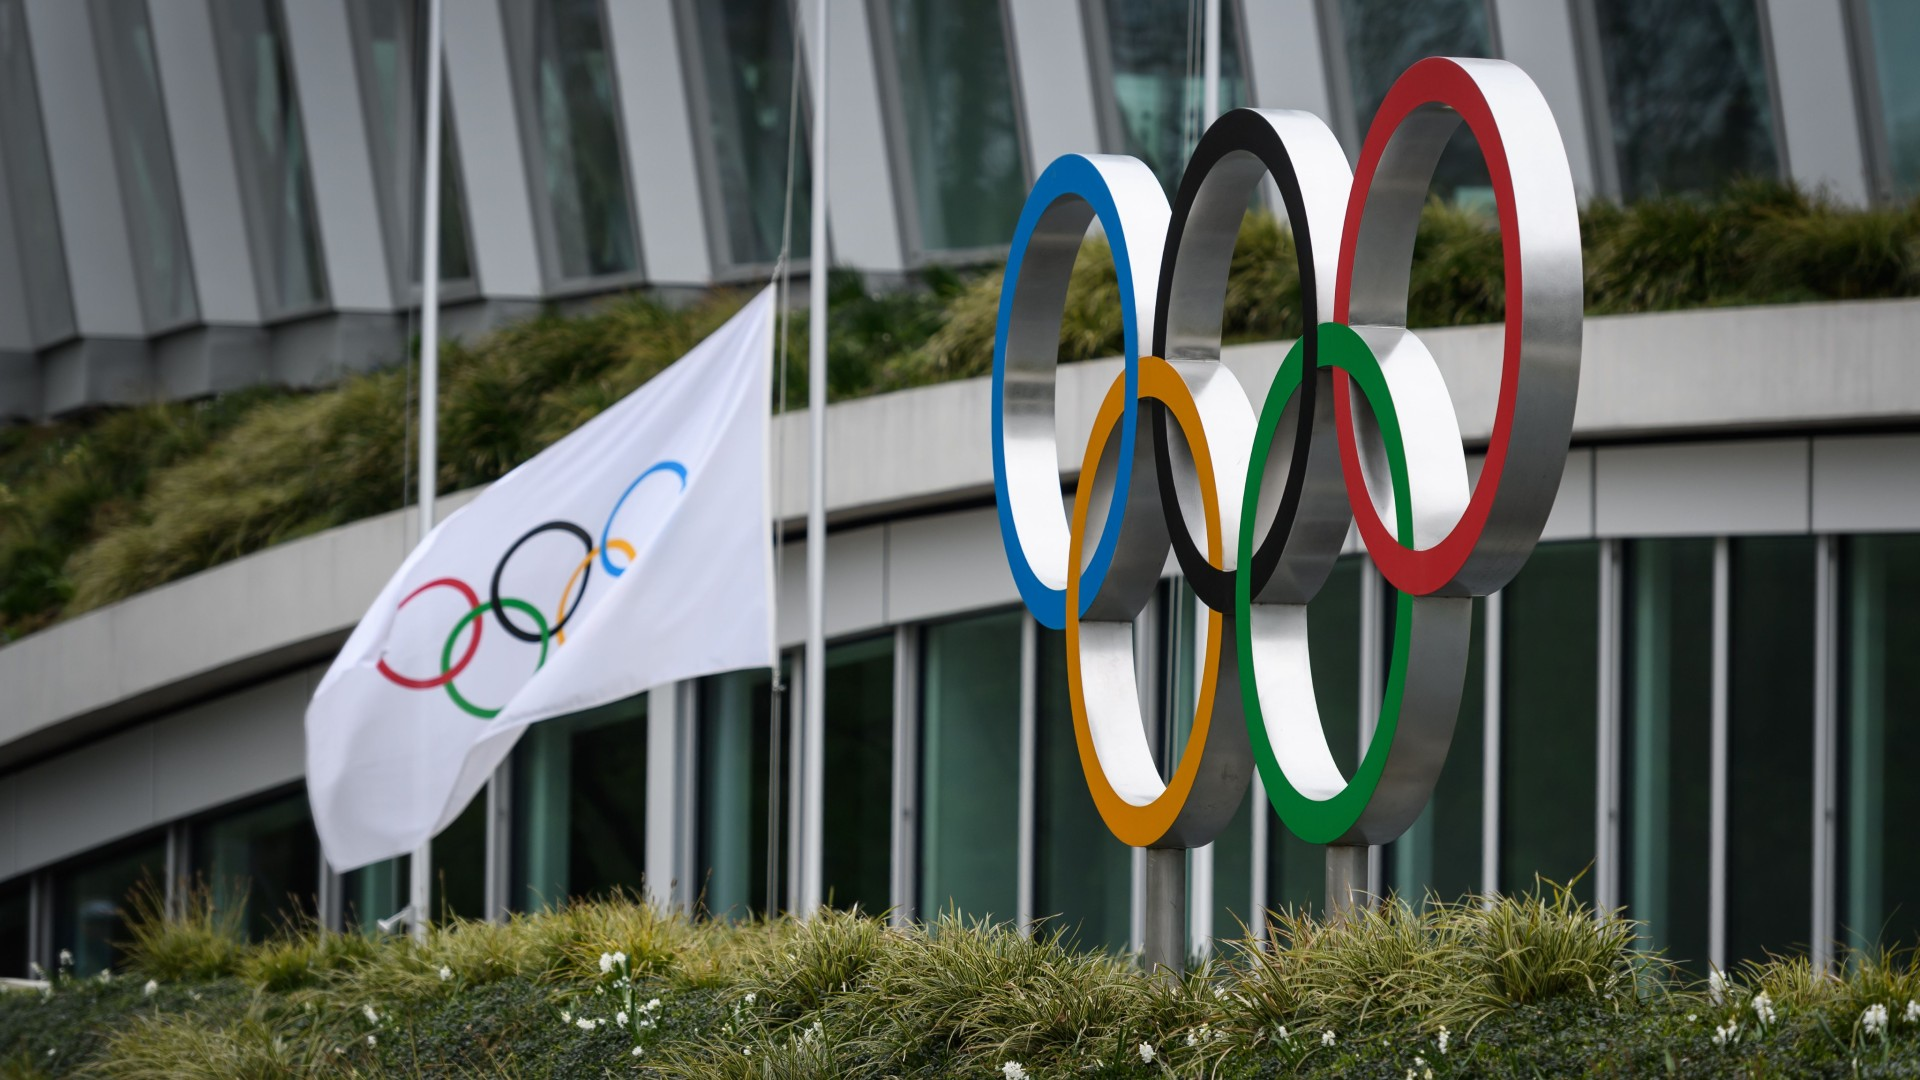 Senegal and the International Olympic Committee (IOC) have mutually agreed to postpone the Youth Olympic Games (YOG) Dakar 2022 to 2026. This is contained in a statement on the committee's website on Wednesday. According to the statement, the agreement was approved on Wednesday by the IOC Executive Board, and will be submitted to the IOC […]